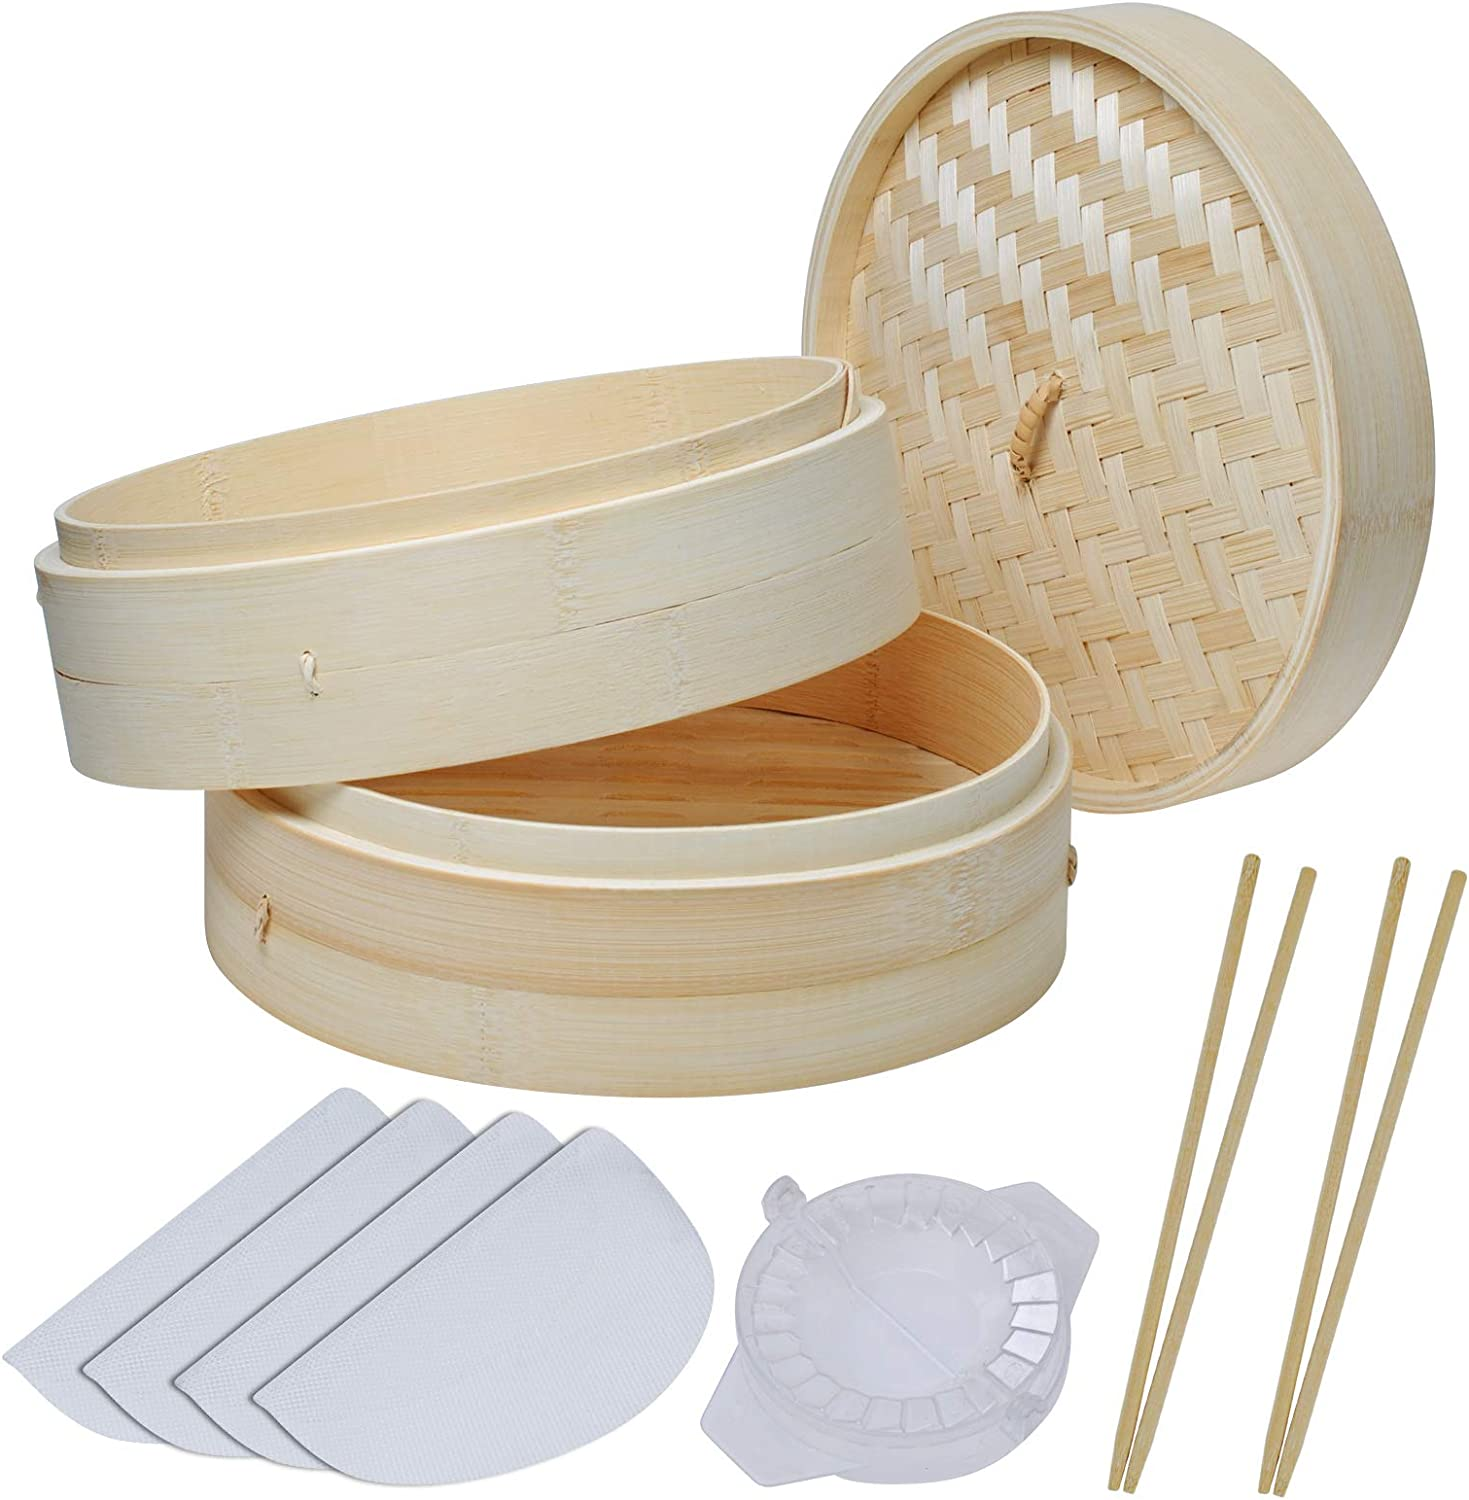 Bamboo Steamer 10 Inch, 2 Tier Handmade Bamboo Steamer Basket for Dumpling Cooking, Steaming Rice Buns Vegetables Fish with 4 Reusable Cotton Liners, 2 Sets Chopsticks & Dumpling Maker